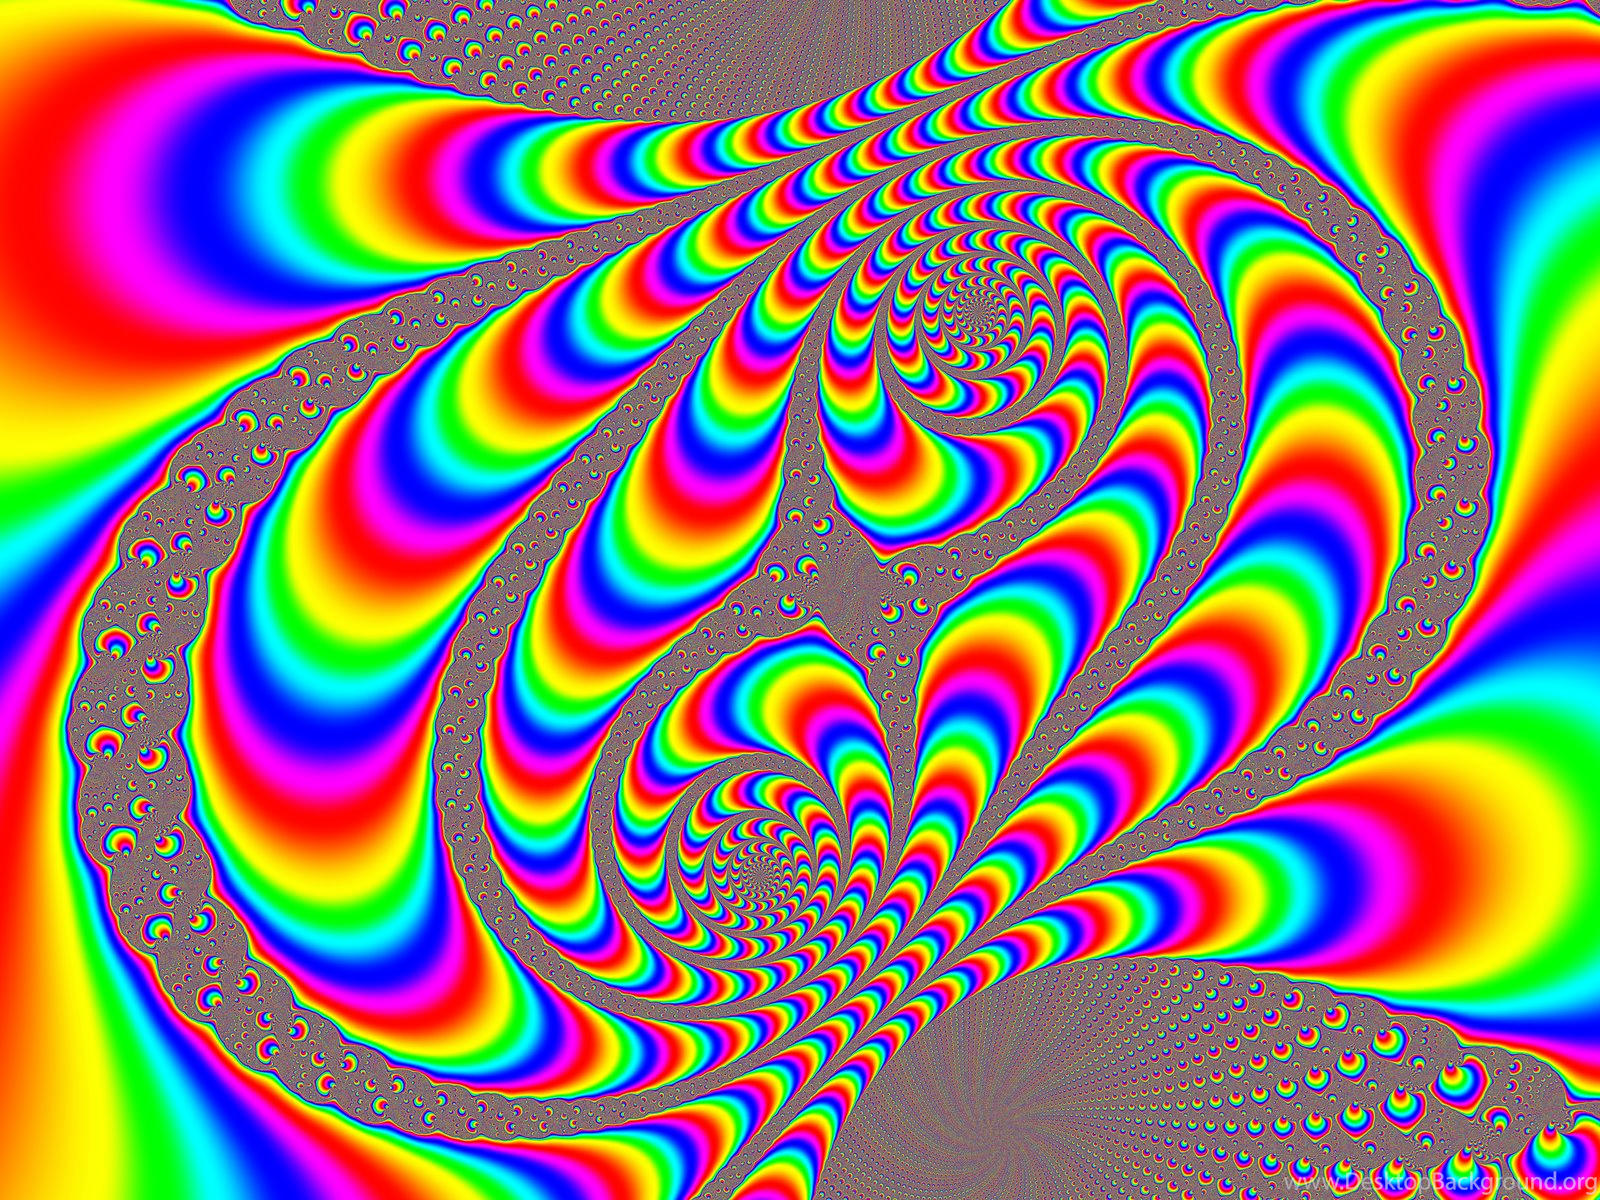 trippy tie dye background - photo #22